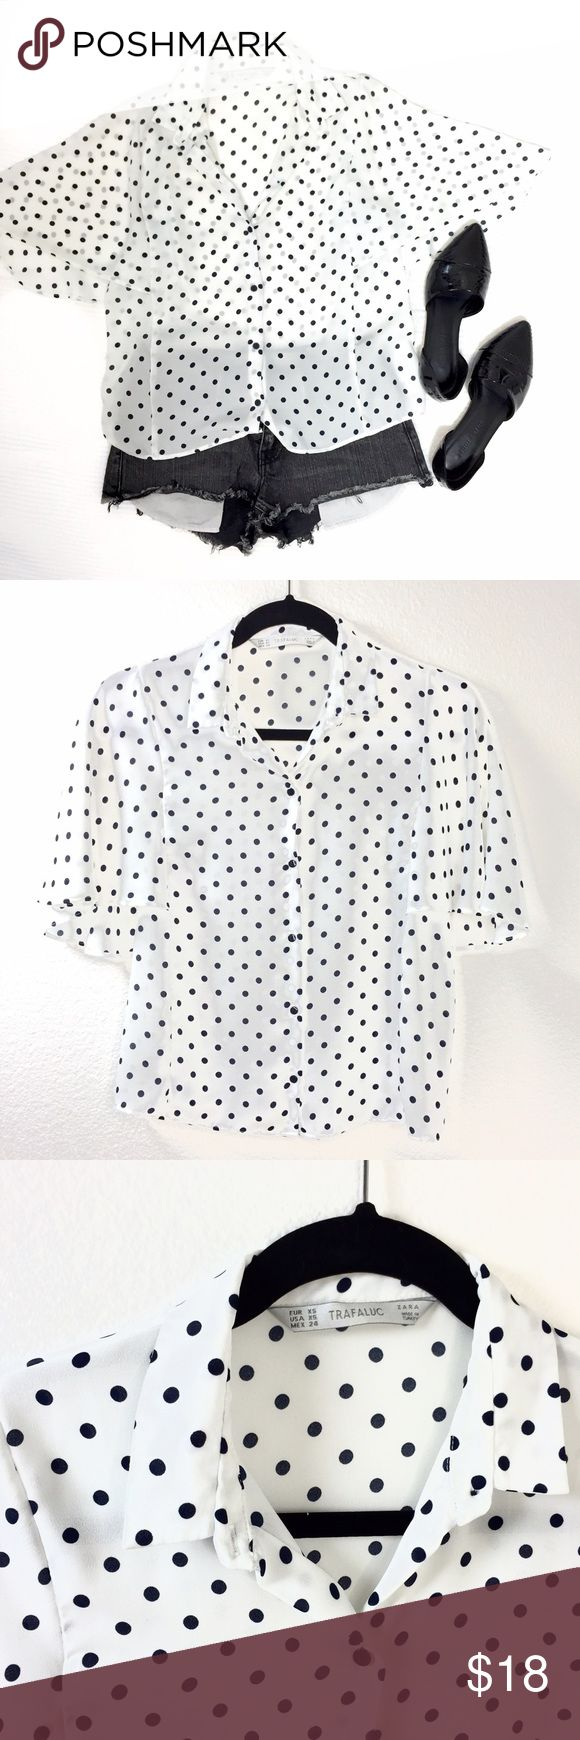 """ZARA Polka Dot Batwing Top NO TRADES. NO PAYPAL. NO EXCEPTIONS.   ZARA flowy navy and white sheer polka dot batwing top. Size XS. In excellent condition. Approx 18"""" across chest and 22"""" in length. Other items in photo are also listed in my PM closet.  Please be considerate when making an offer. Poshmark takes 20% on each sale, and I price the items in my closet pretty fairly especially the condition that they're in. Bundle for additional discount and to save on shipping. Zara Tops Blouses"""